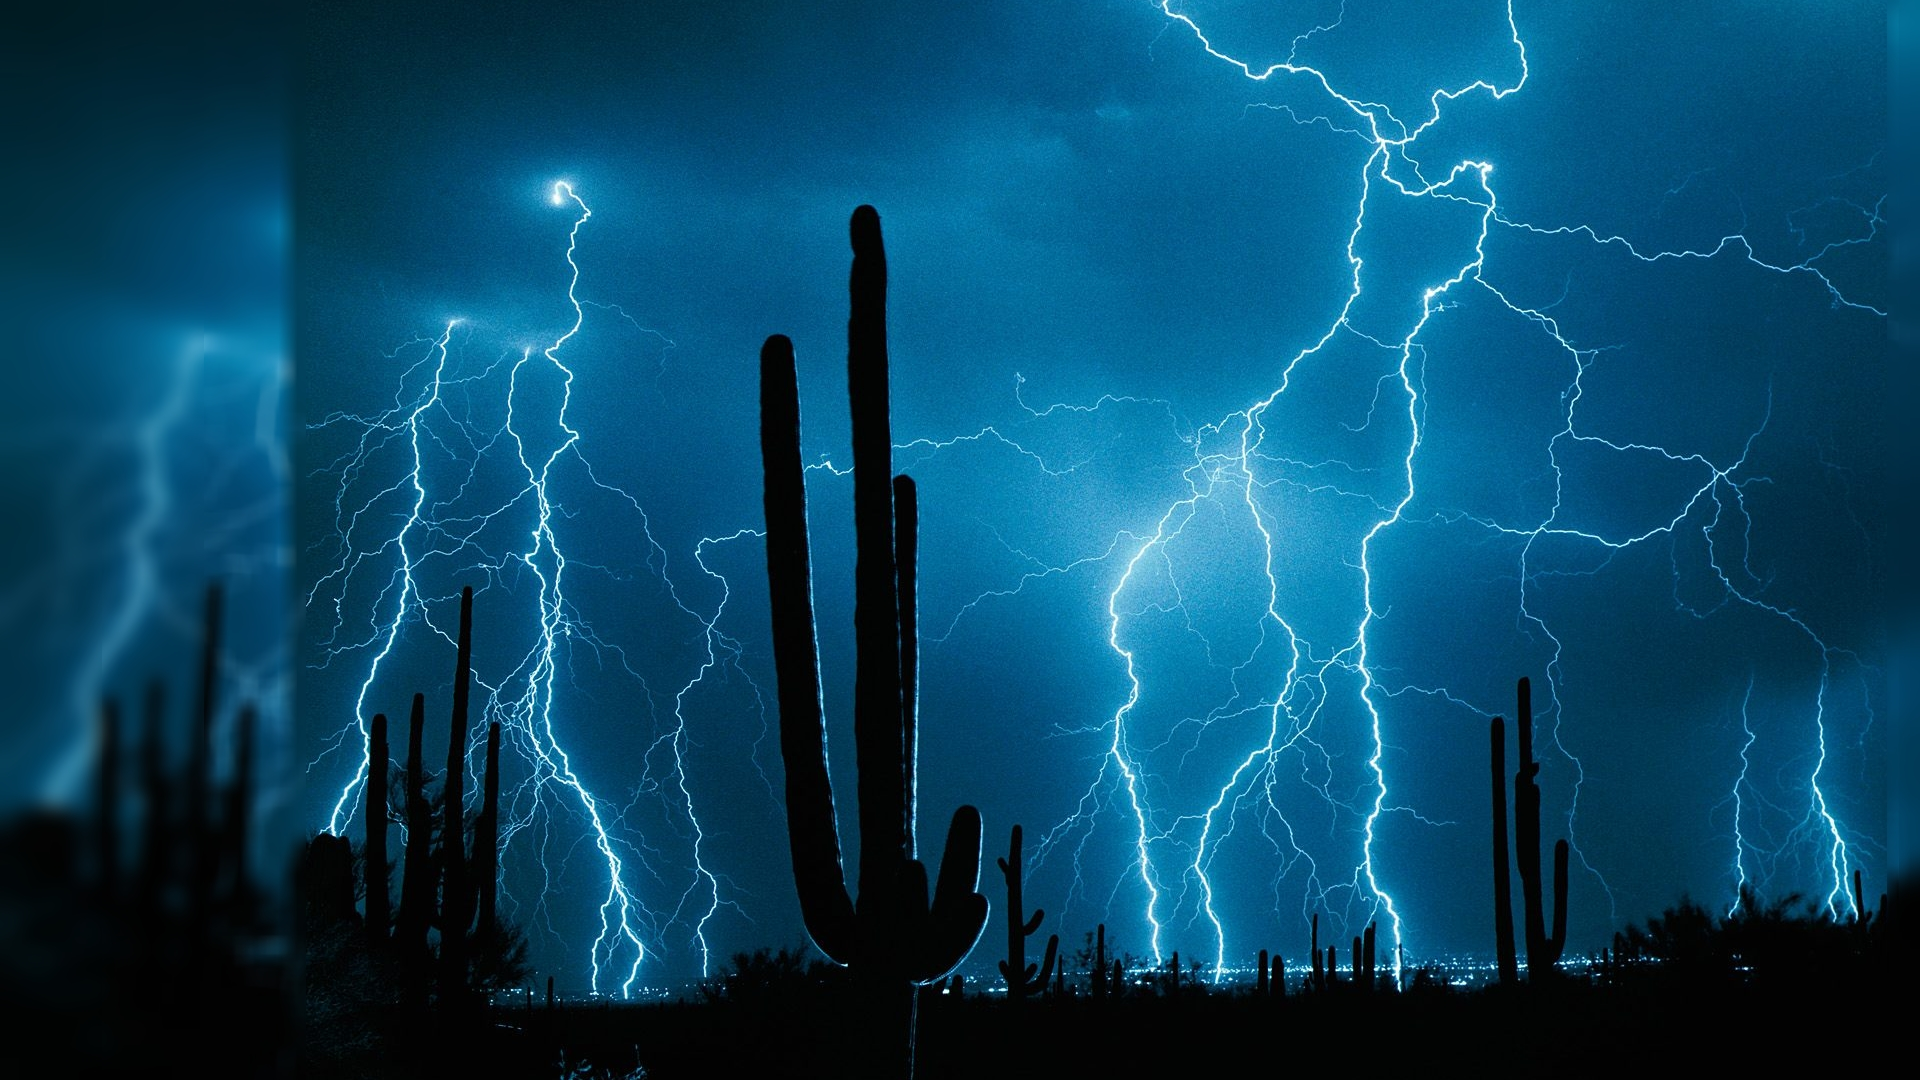 storms hd wallpaper for your desktop background or desktop wallpaper 1920x1080